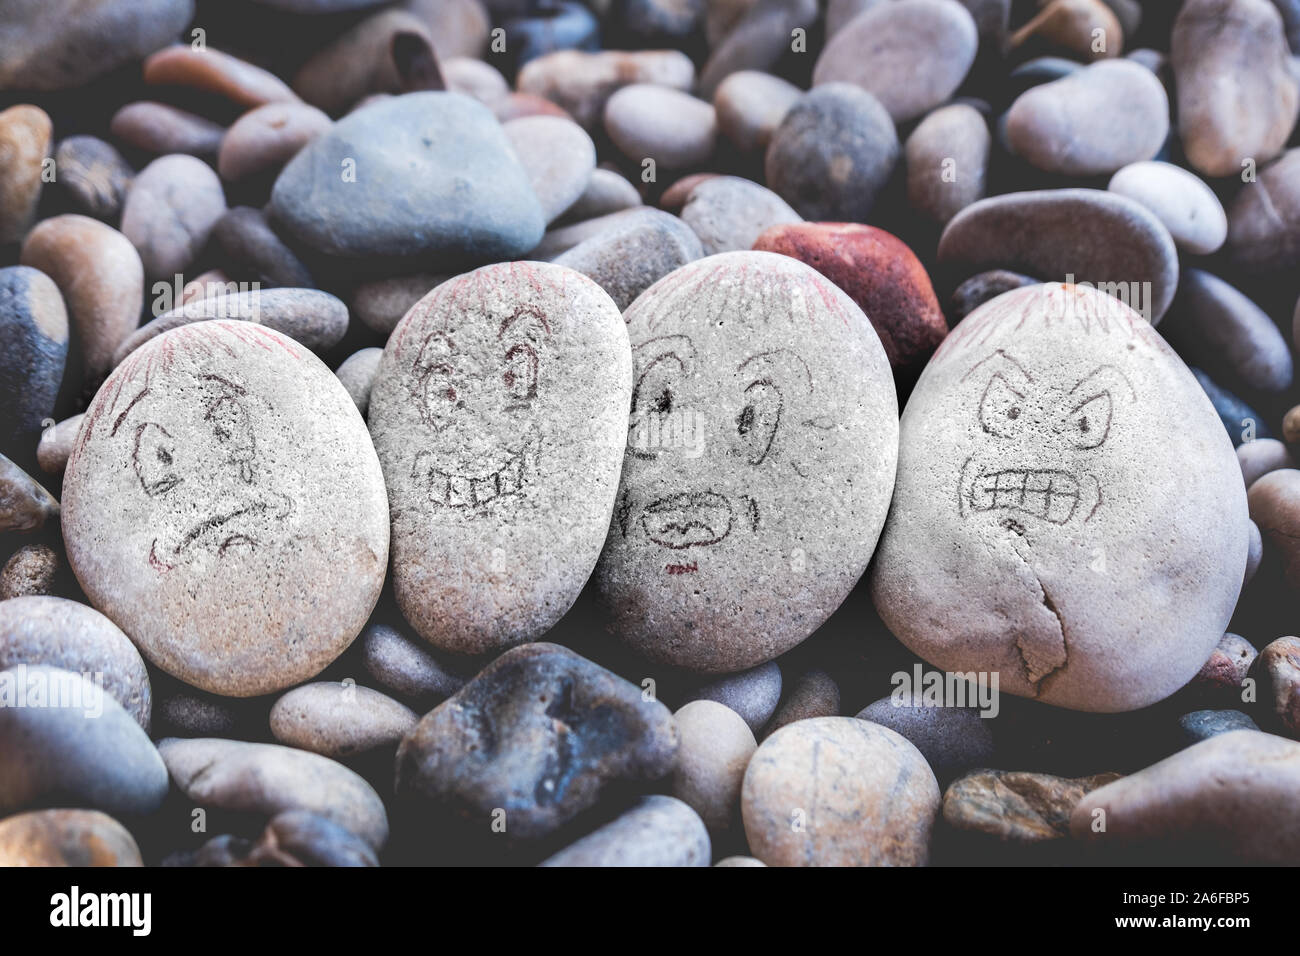 managing emotions emoji faces on stones - sad, happy, surprised worried and angry feelings draw Stock Photo